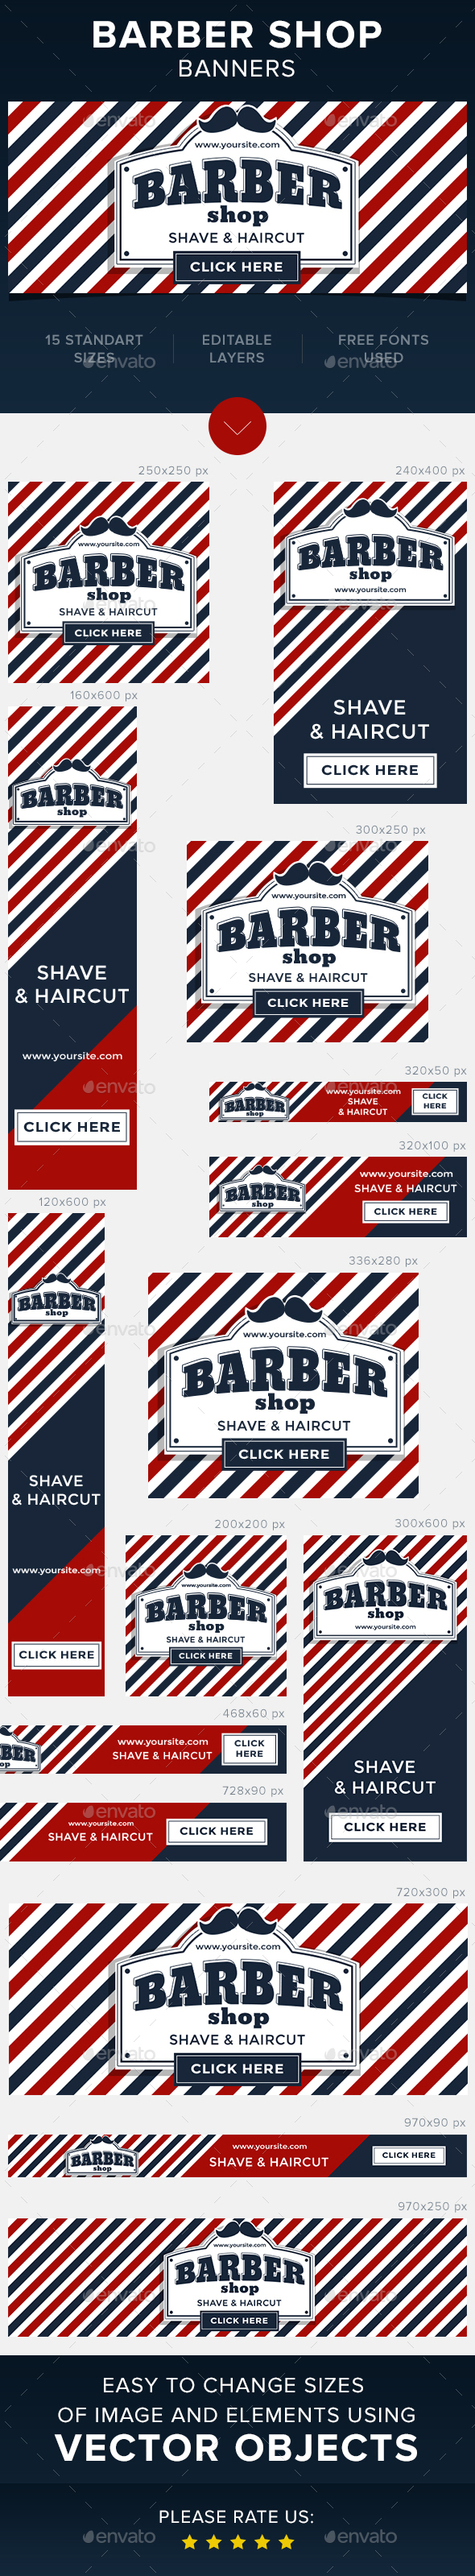 Barber Shop Banners - Banners & Ads Web Elements